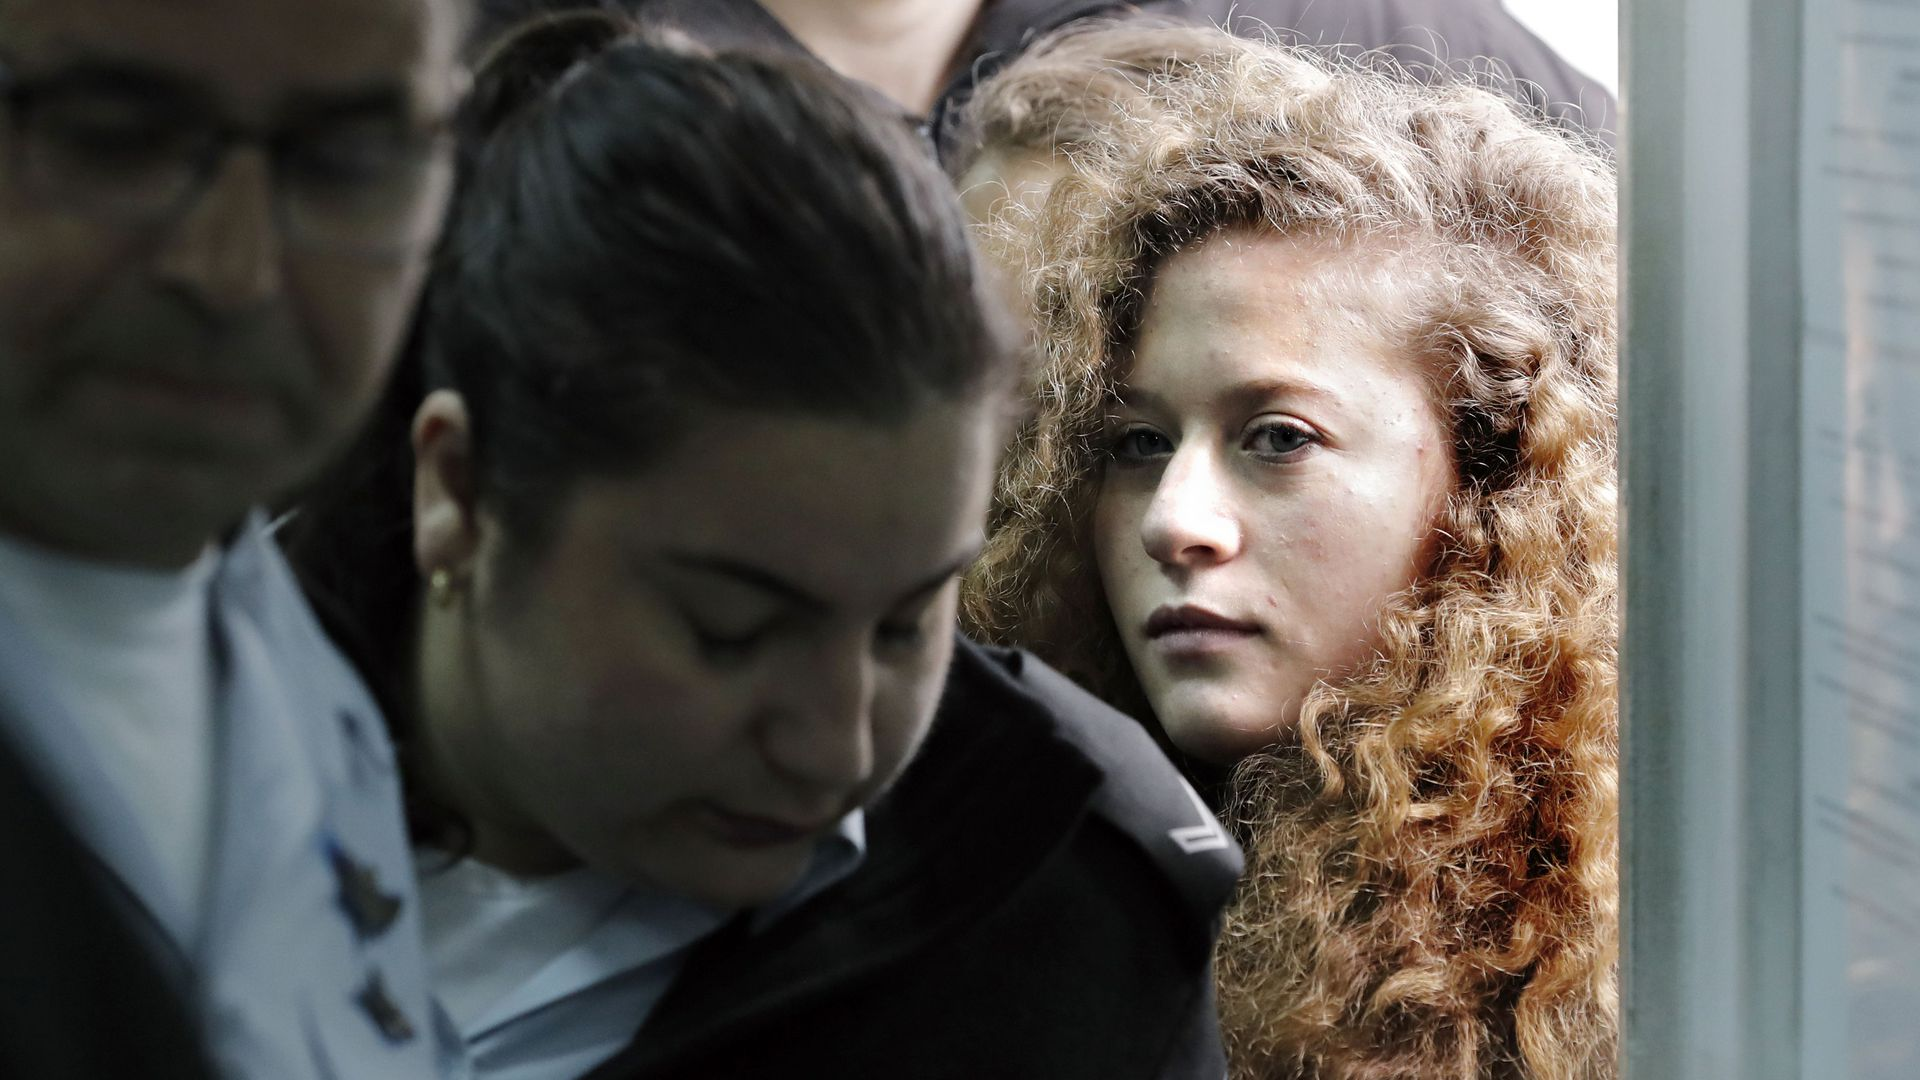 Palestinian teenager Ahed Tamimi